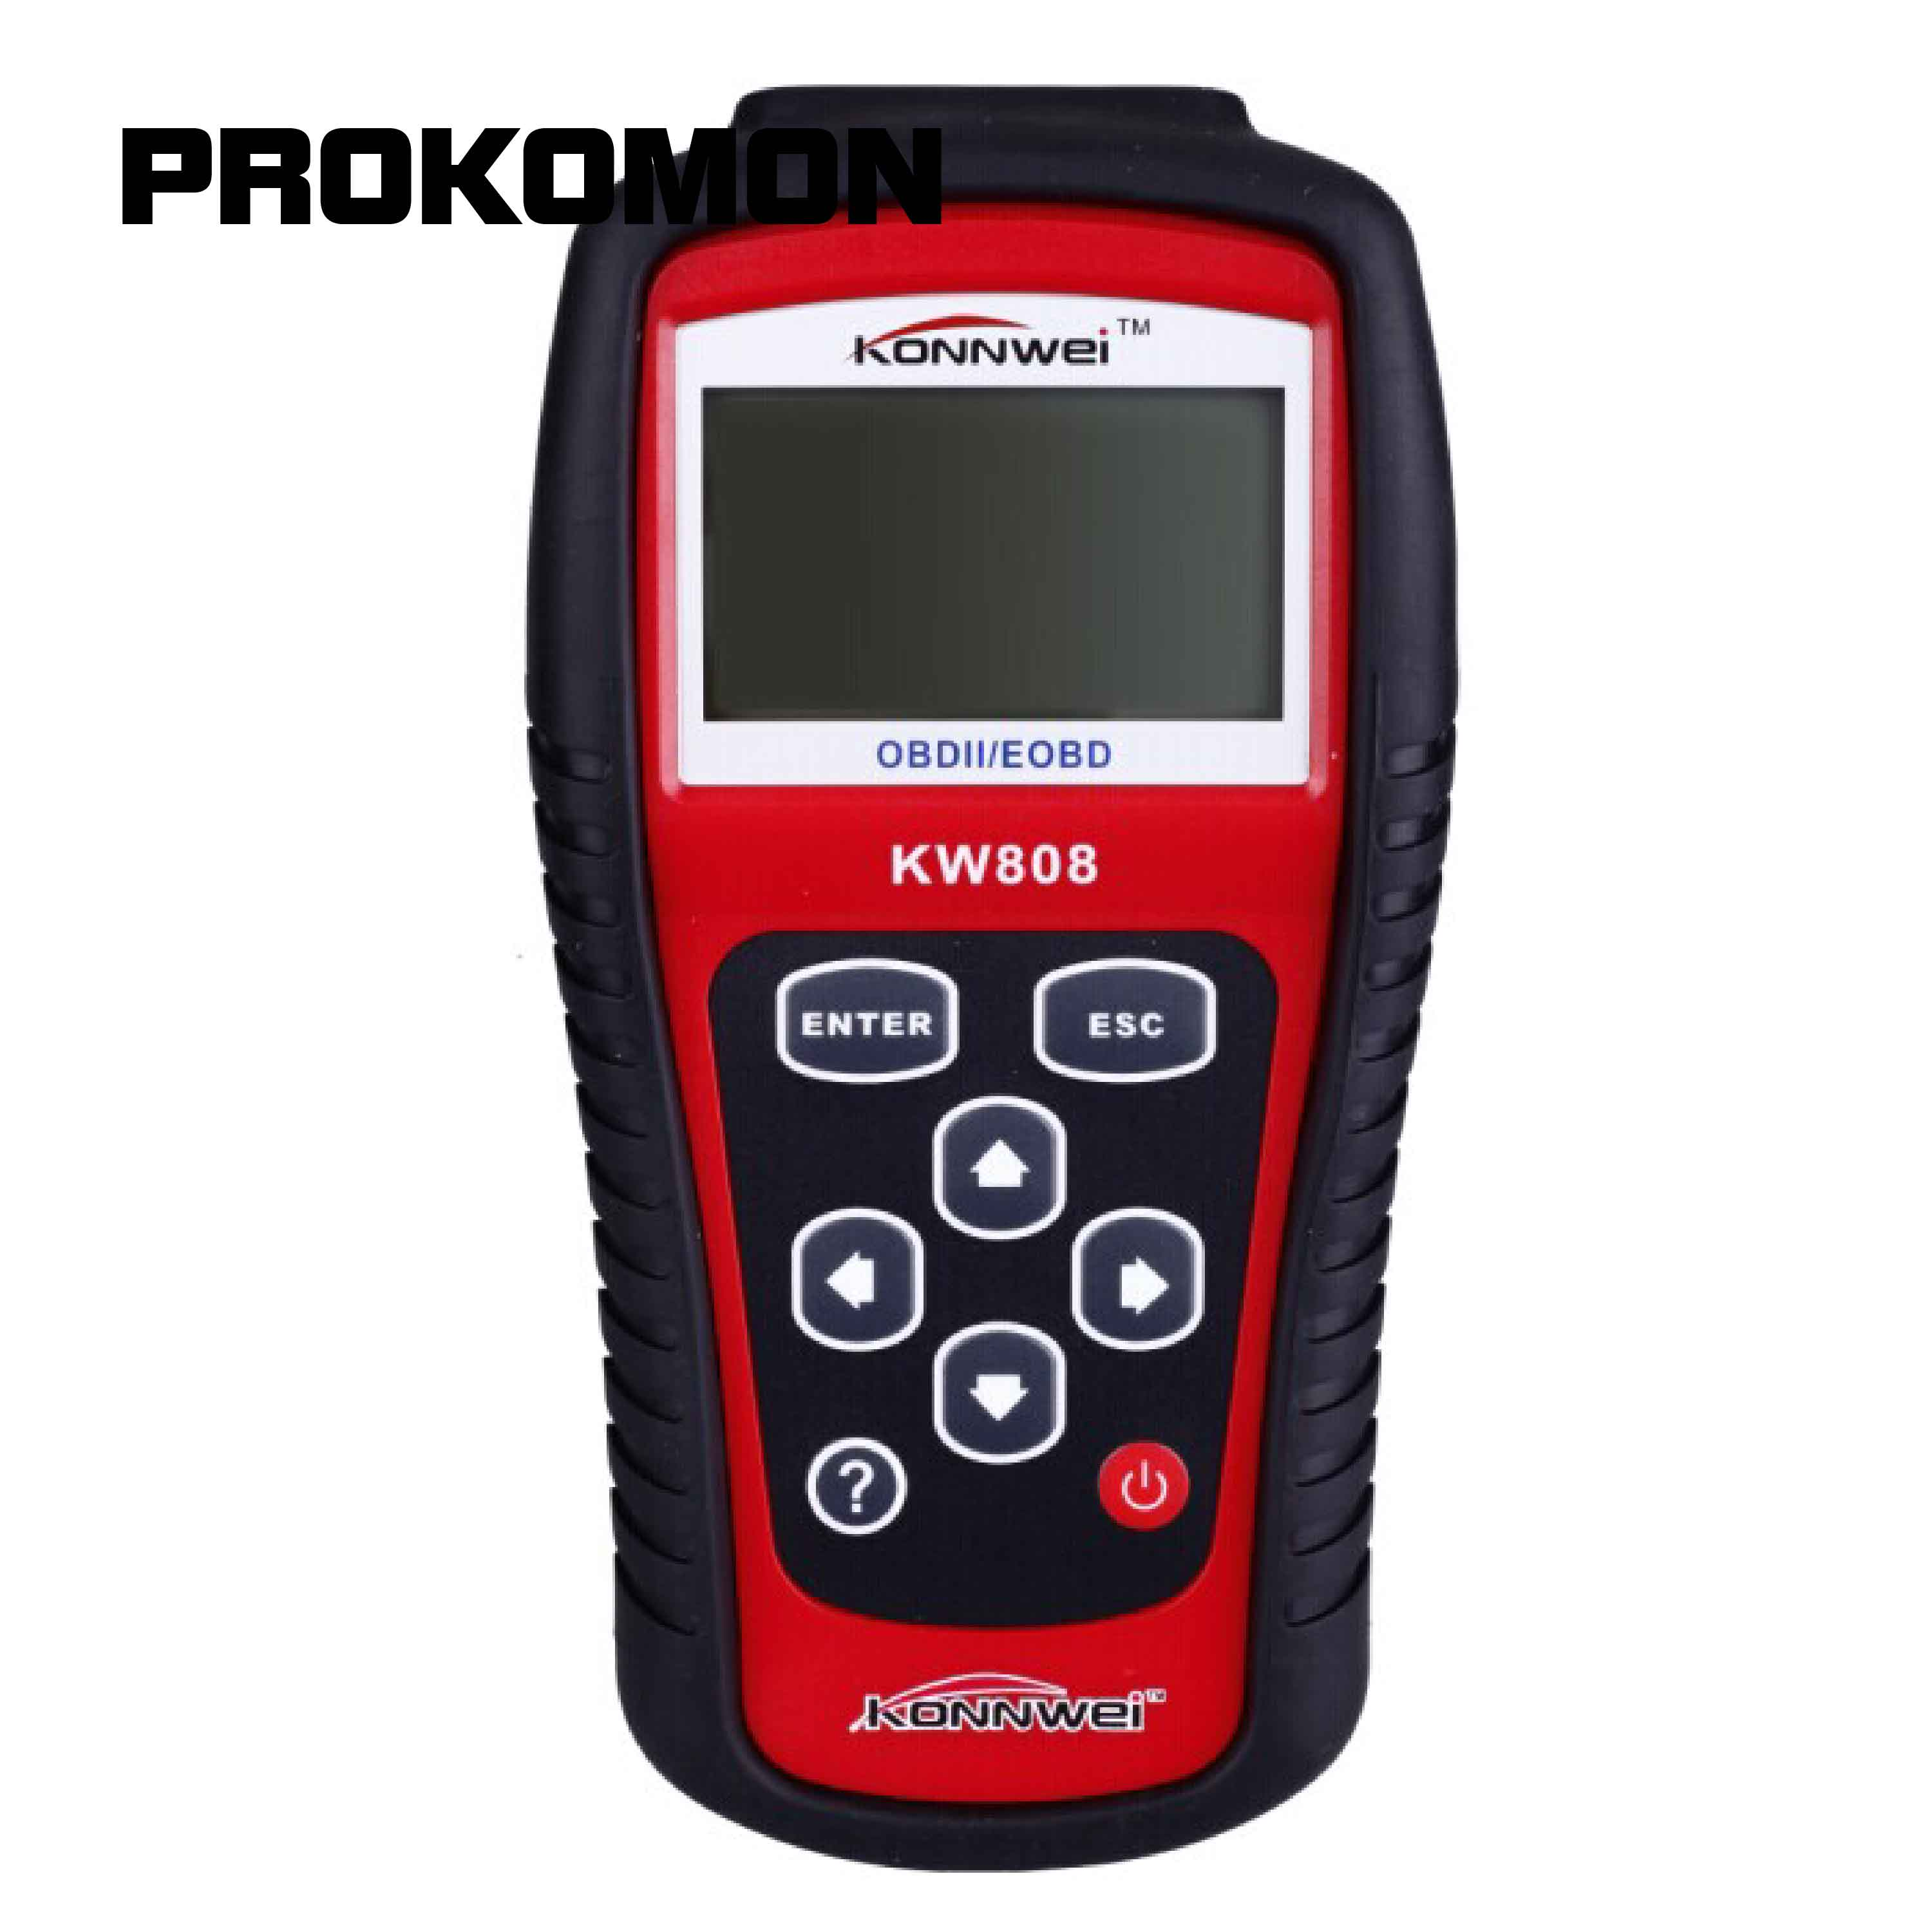 OBDII/EOBD CAN Scanner tool Auto Code Reader Work For most car better than Live Data Code Reader Engine